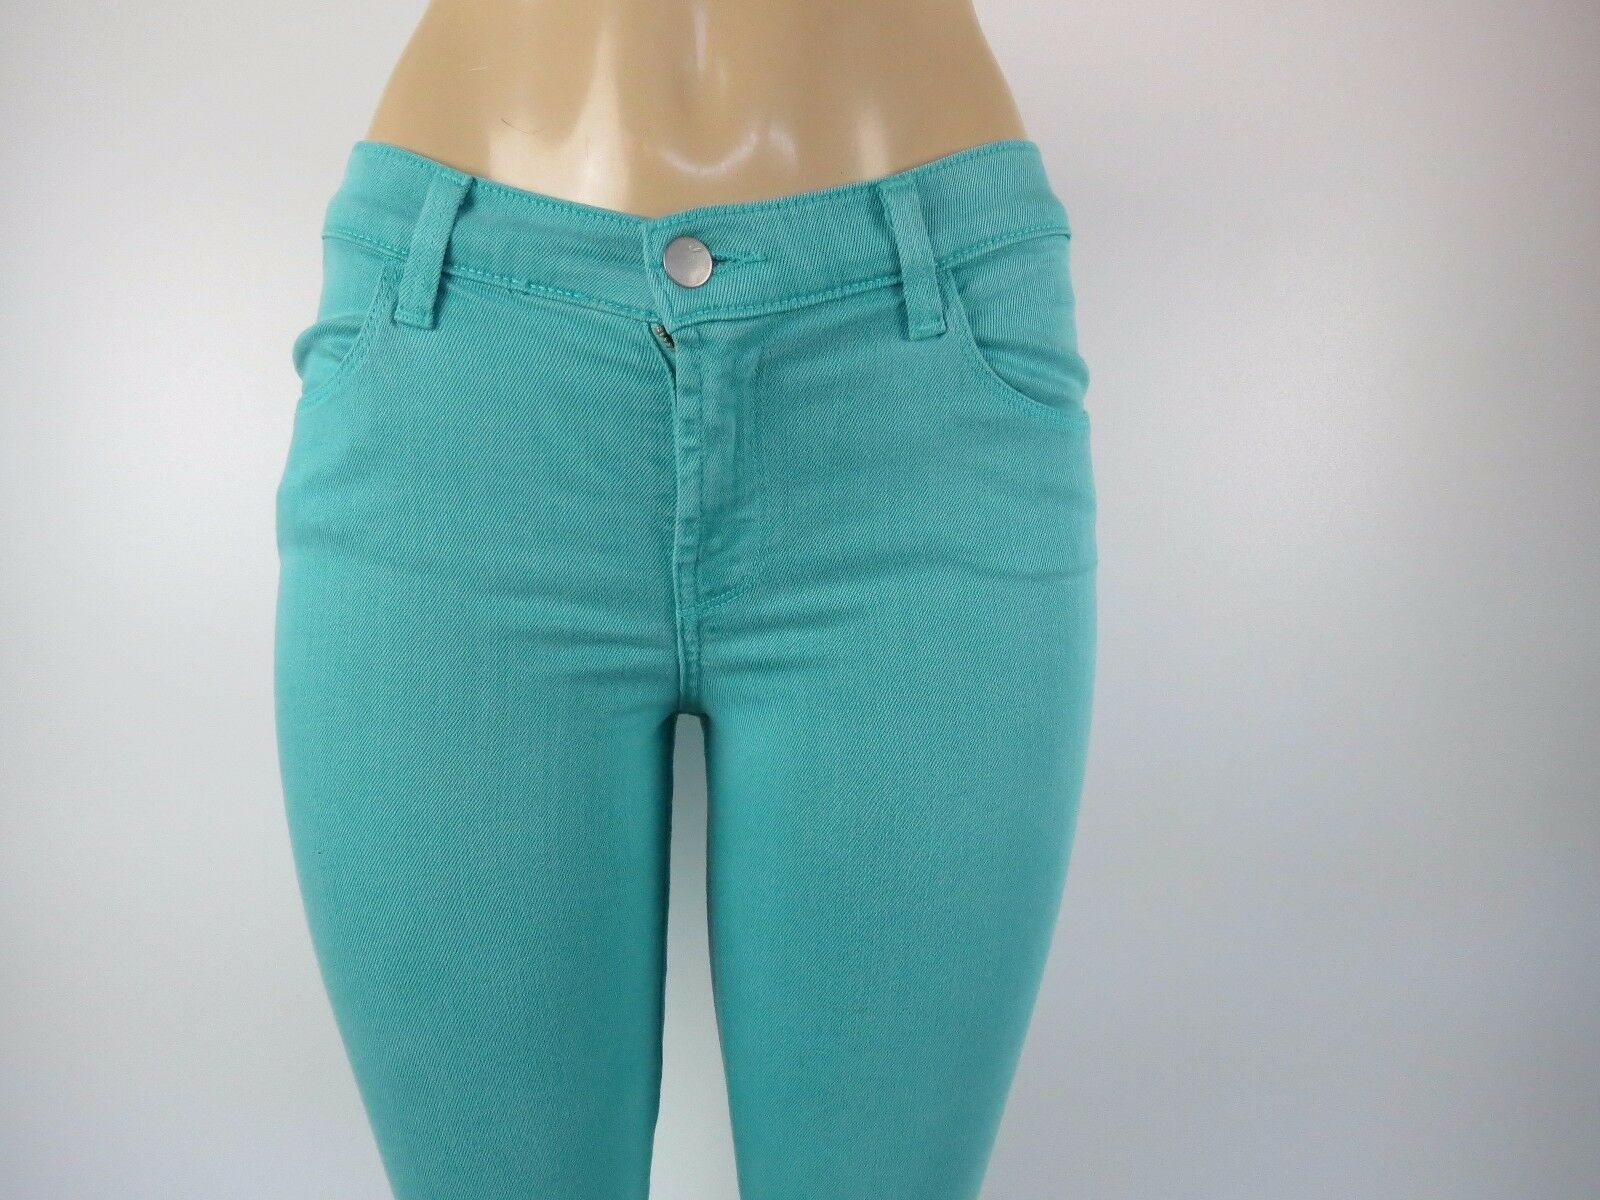 NWT J BRAND WOMENS JEANS, SUPER SKINNY MID-RISE, COLUMBIA, Size 28,